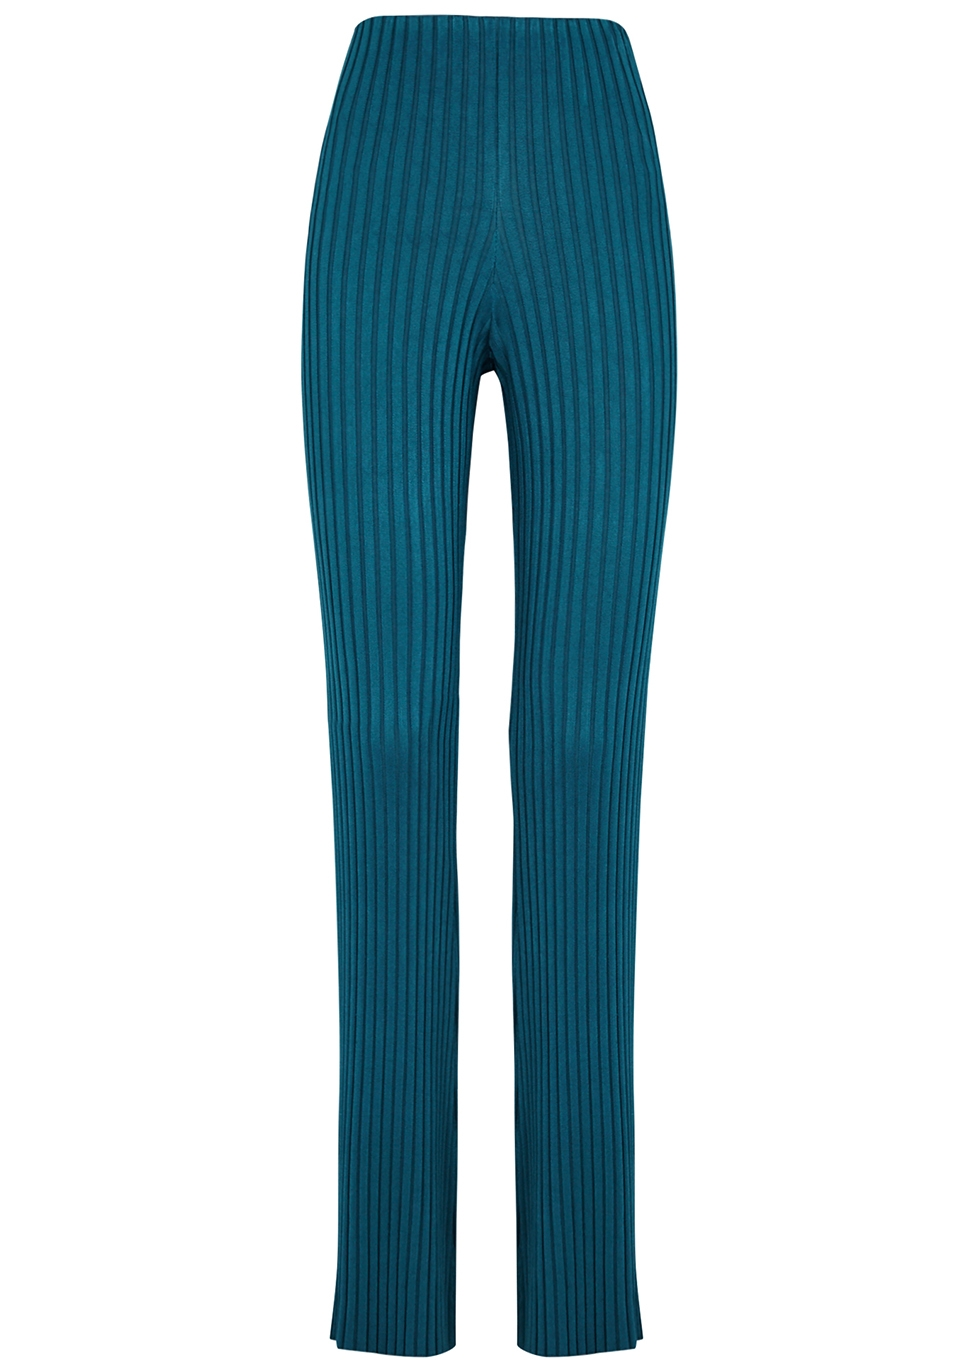 Rhea teal ribbed-knit trousers